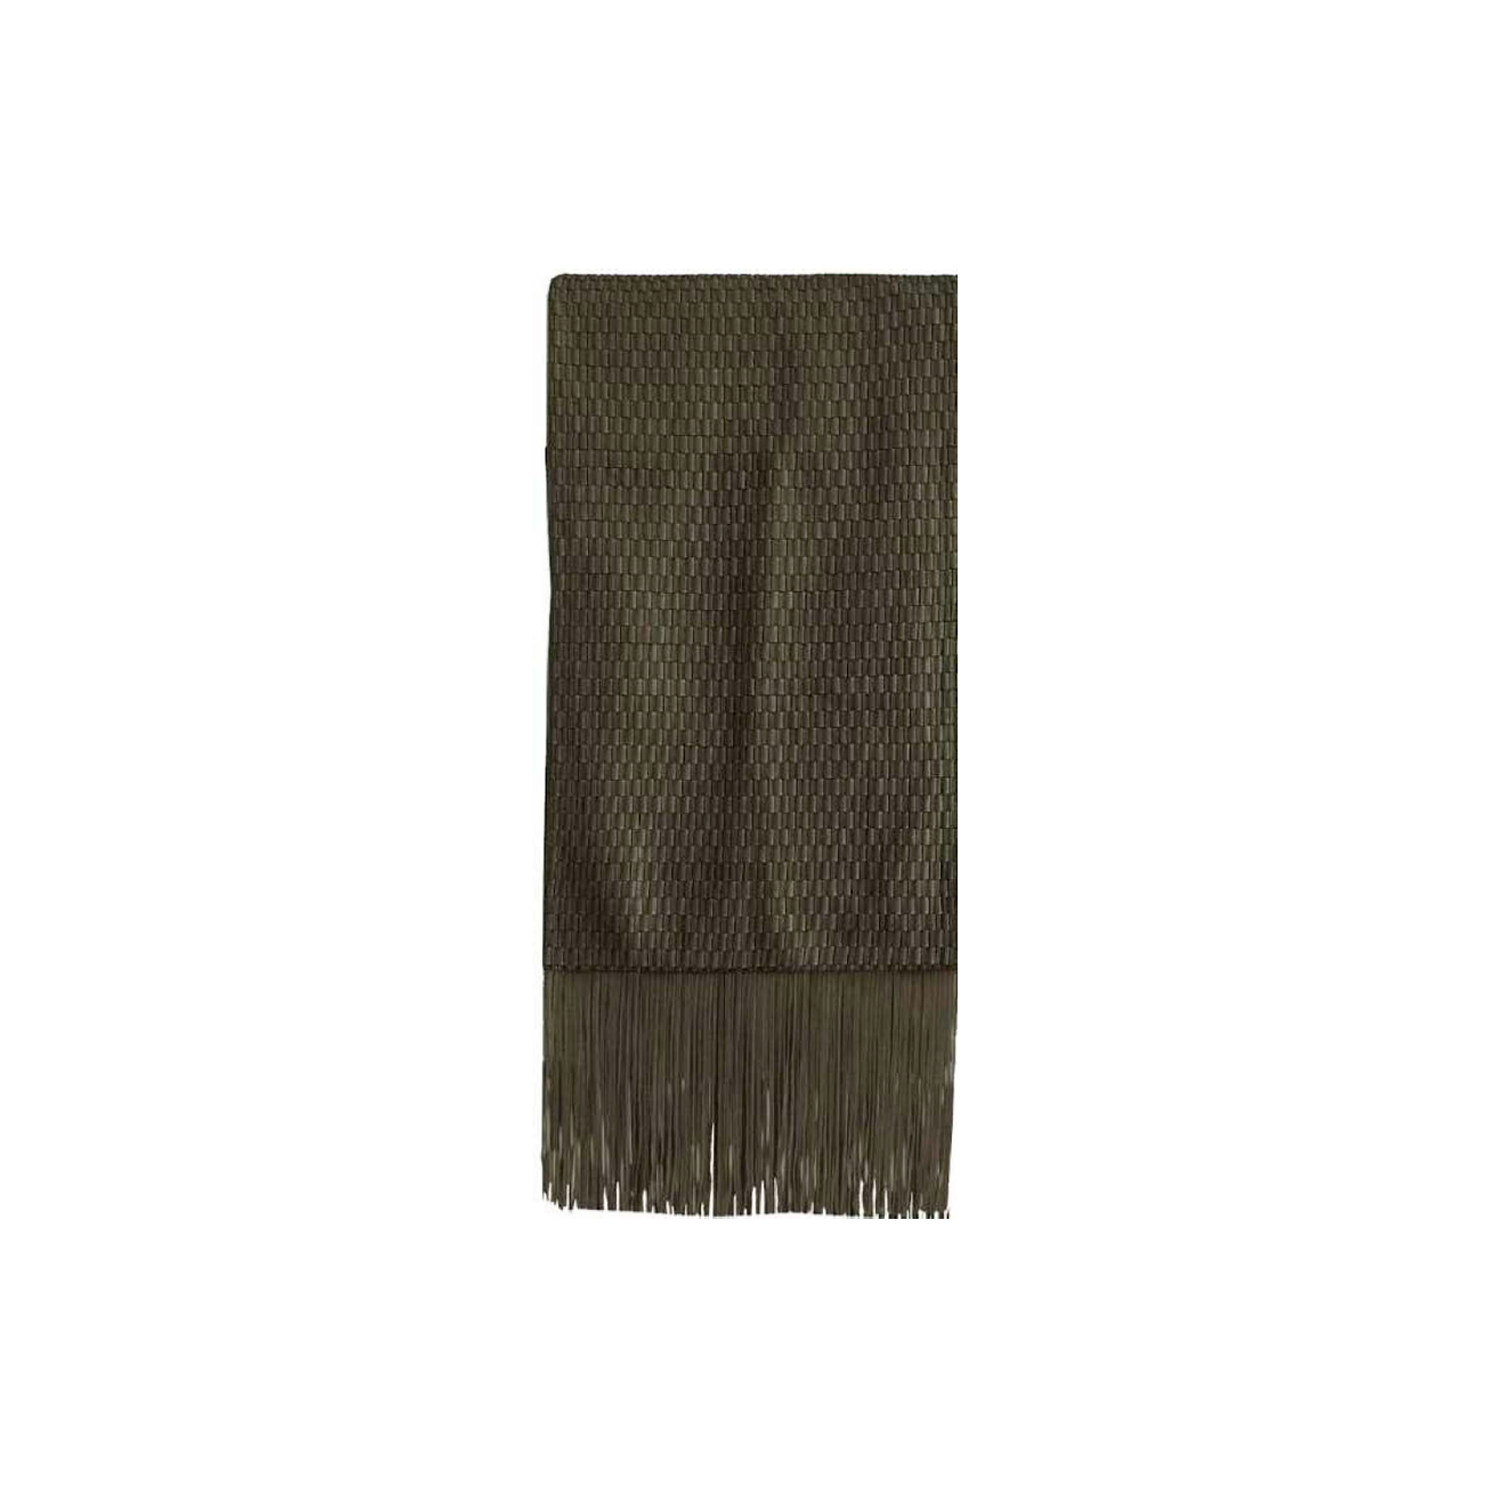 Maxi Catavento Fringe Woven Leather Throw - The Maxi Catavento Fringe Woven Leather Throw is designed to complement an ambient setting with natural and sophisticated feeling. Elisa Atheniense woven leather pieces, are handmade and manufactured in Brazil using an exclusive treated leather that brings the soft feel touch to every single piece.  This throw is woven with leather and suede leather. Please enquire for colour combination, see colour chart for reference. | Matter of Stuff